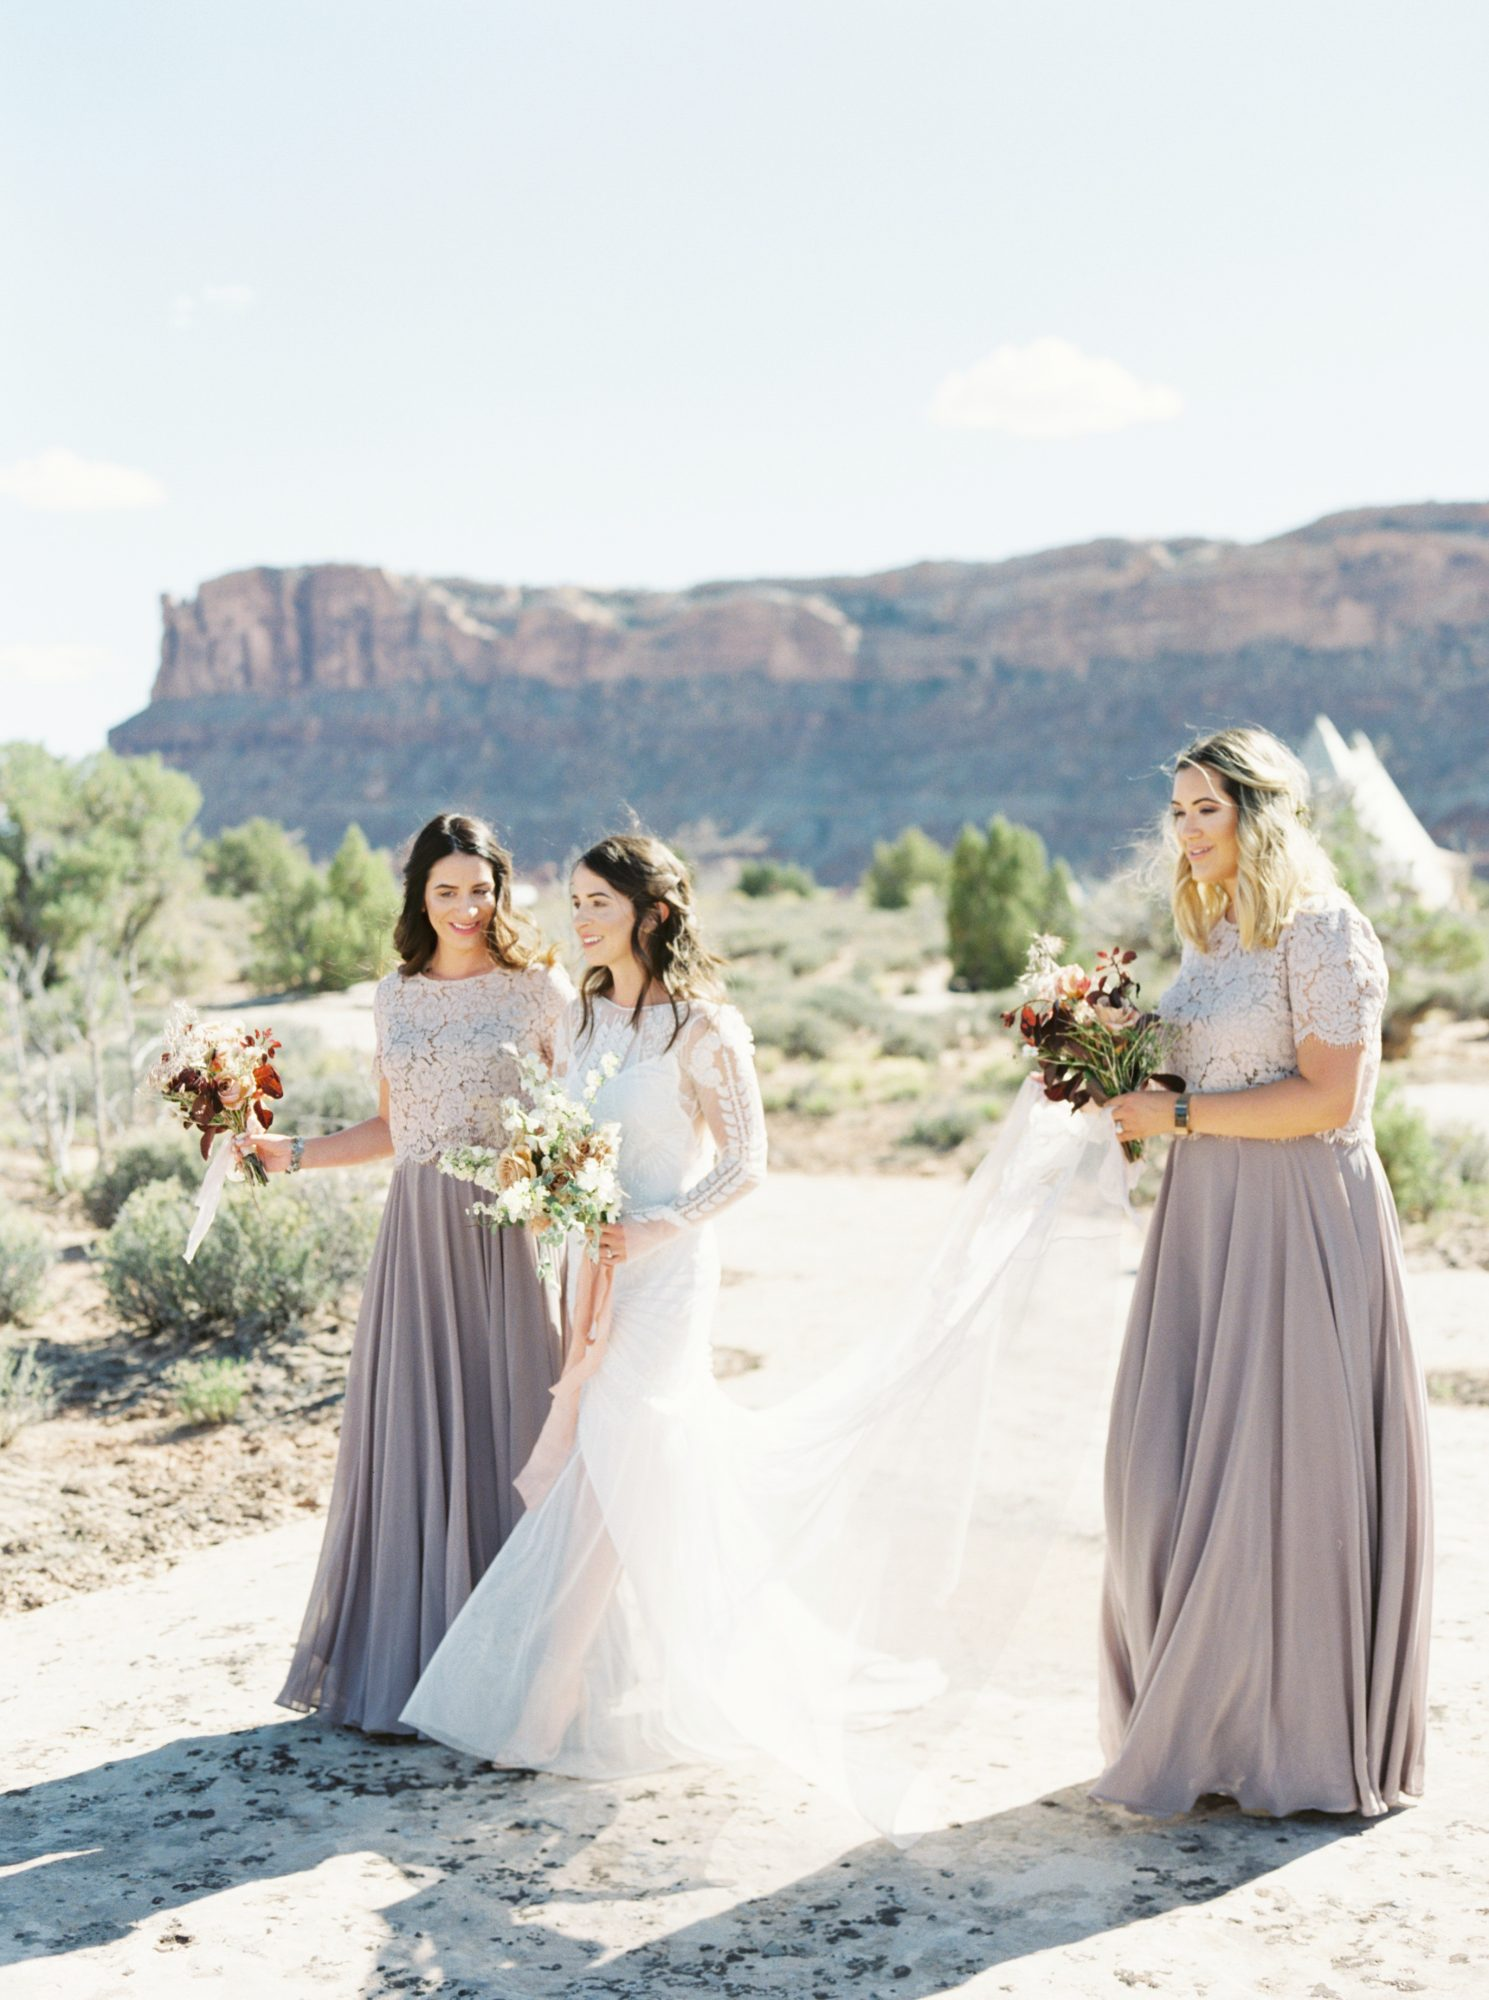 jeanette david wedding bride bridesmaids desert